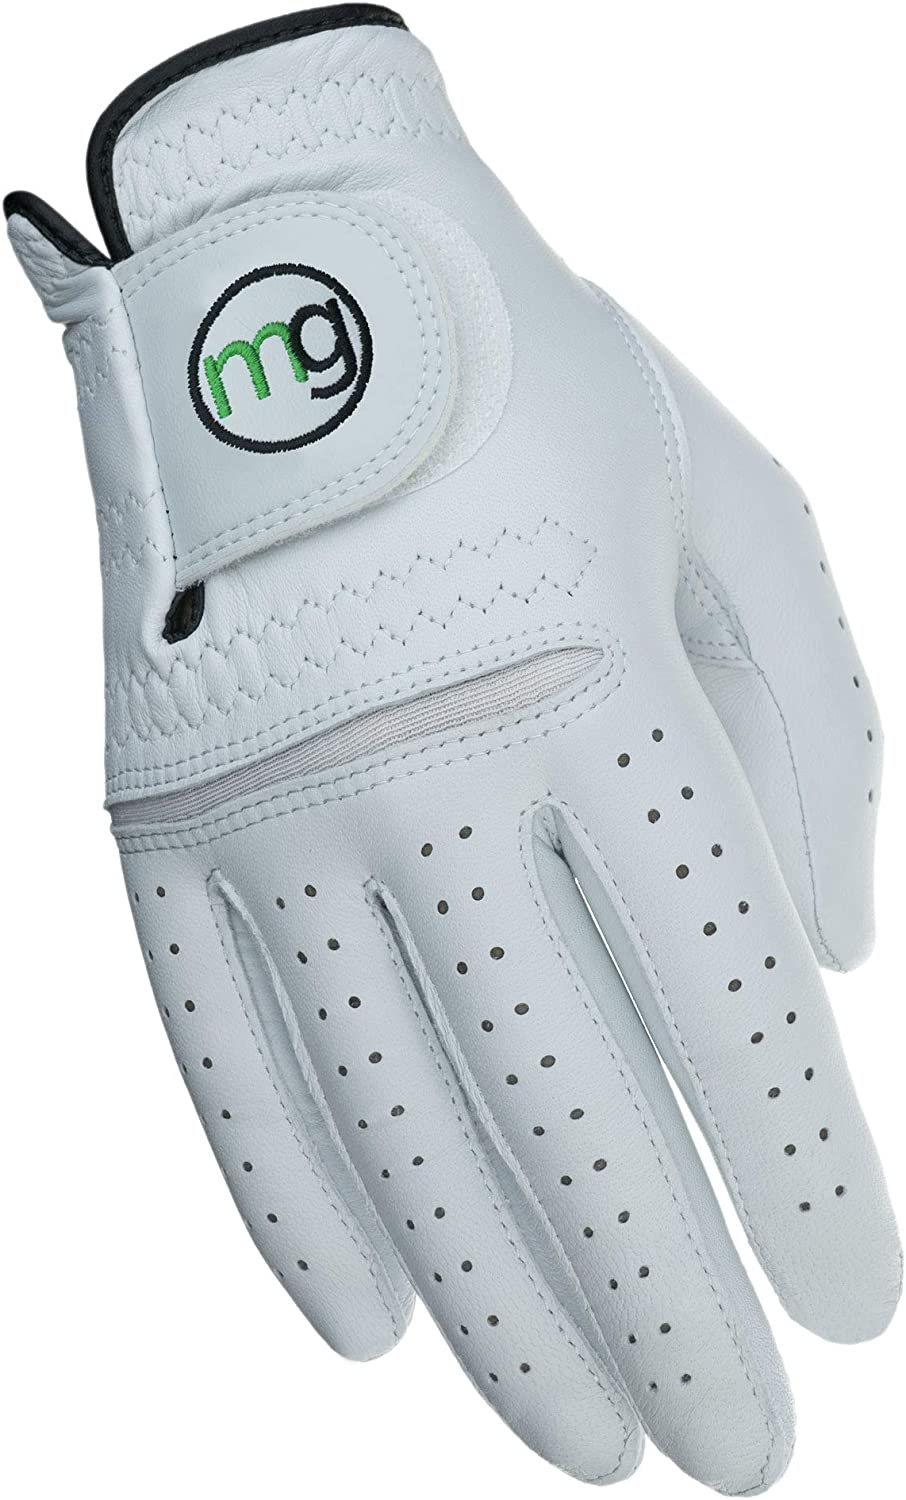 MG Golf Glove Ladies DynaGrip Elite All-Cabretta Leather